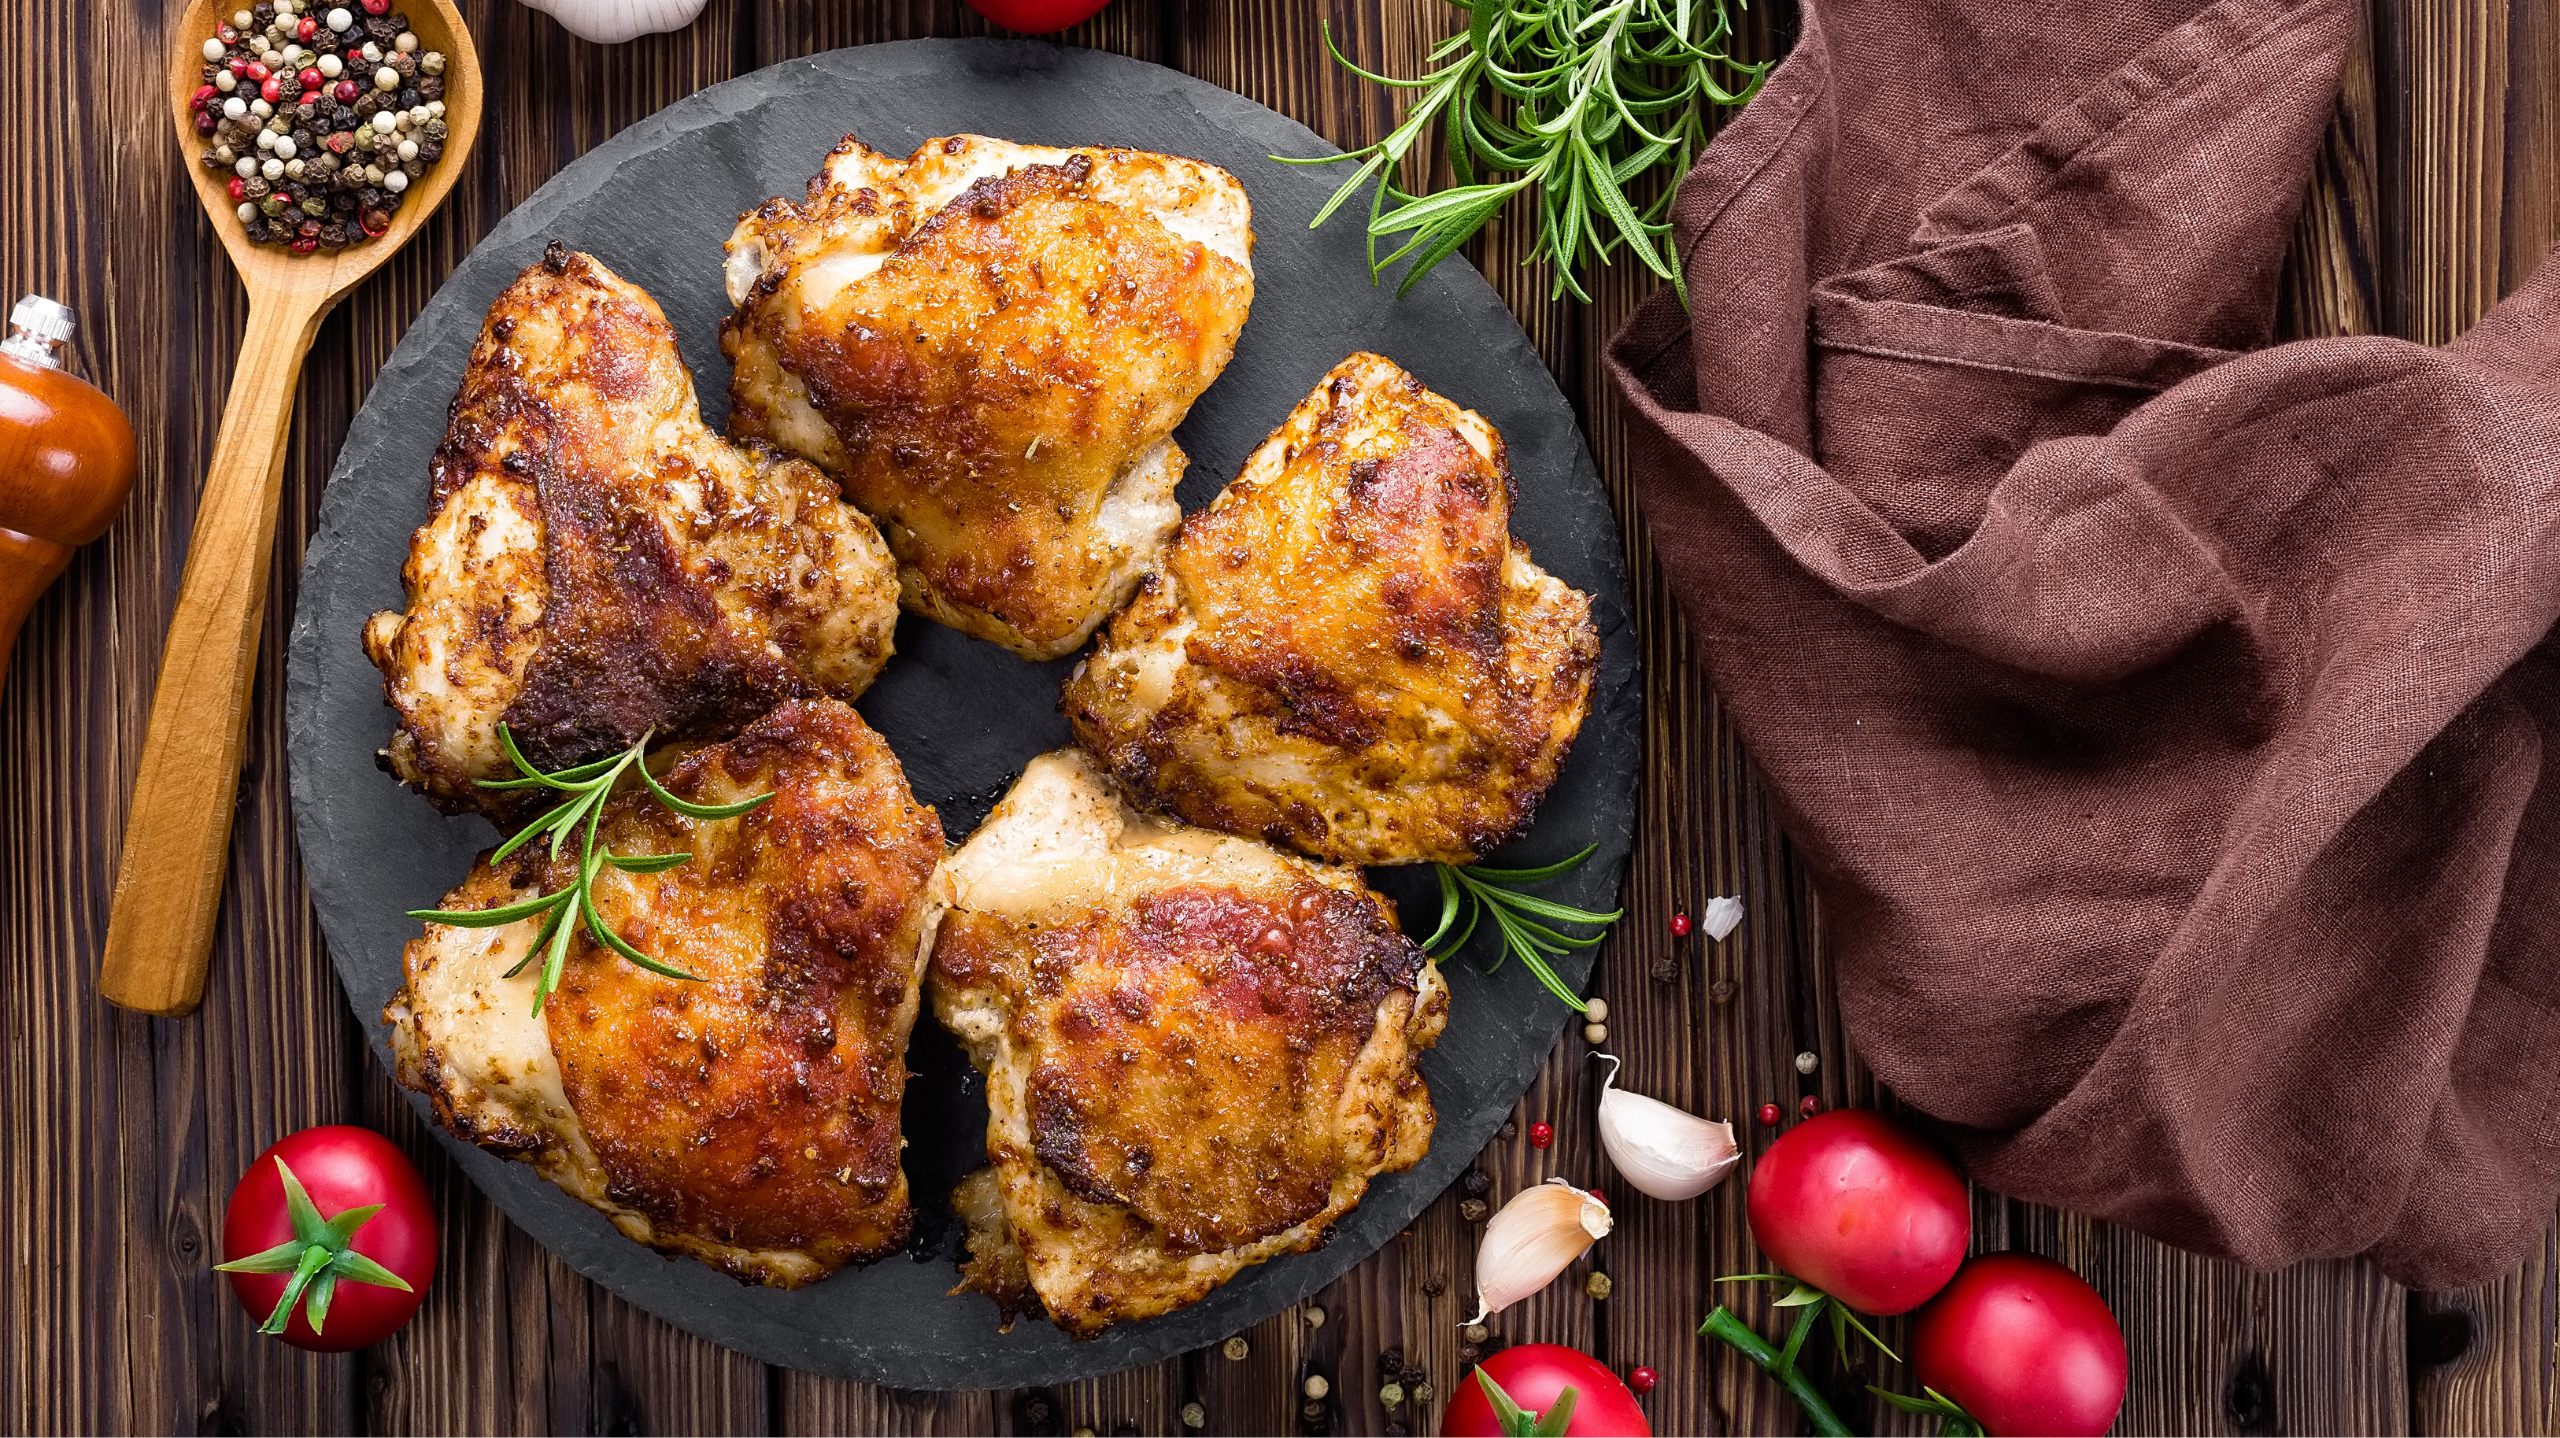 Crispy Chicken Thighs with Rosemary and Garlic